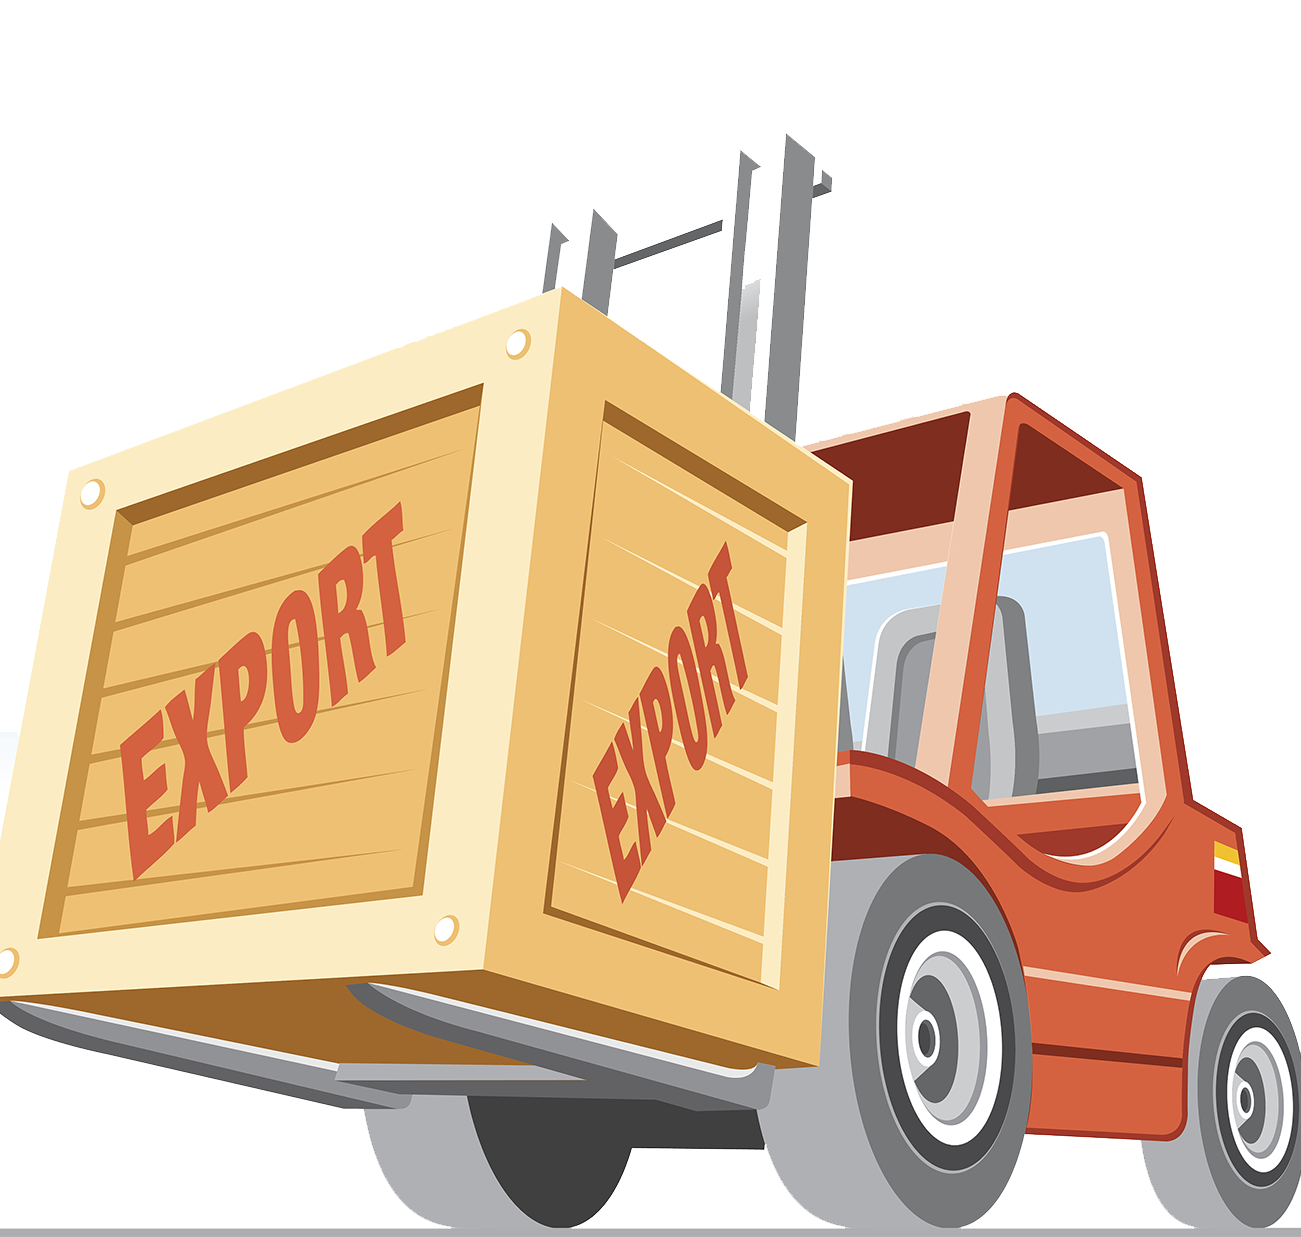 Forklift drawing yellow. Intermodal container cargo illustration